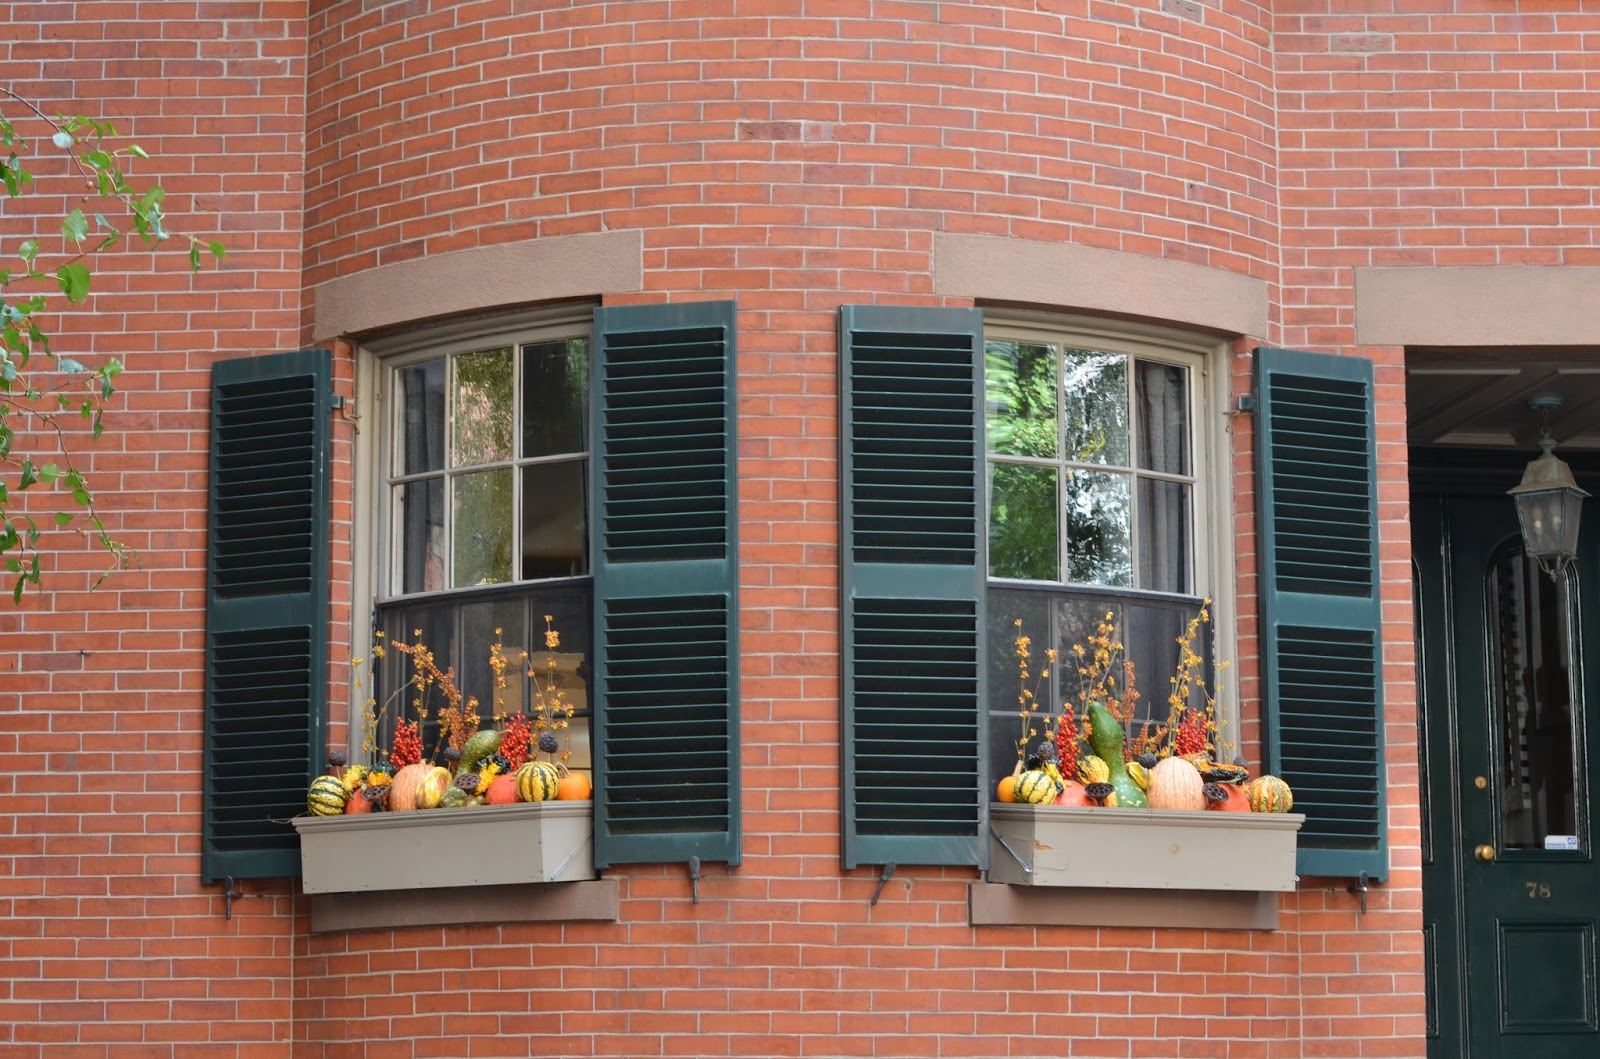 Beacon Hill, Boston, Massachusetts, window decor, pumpkin, fall decor